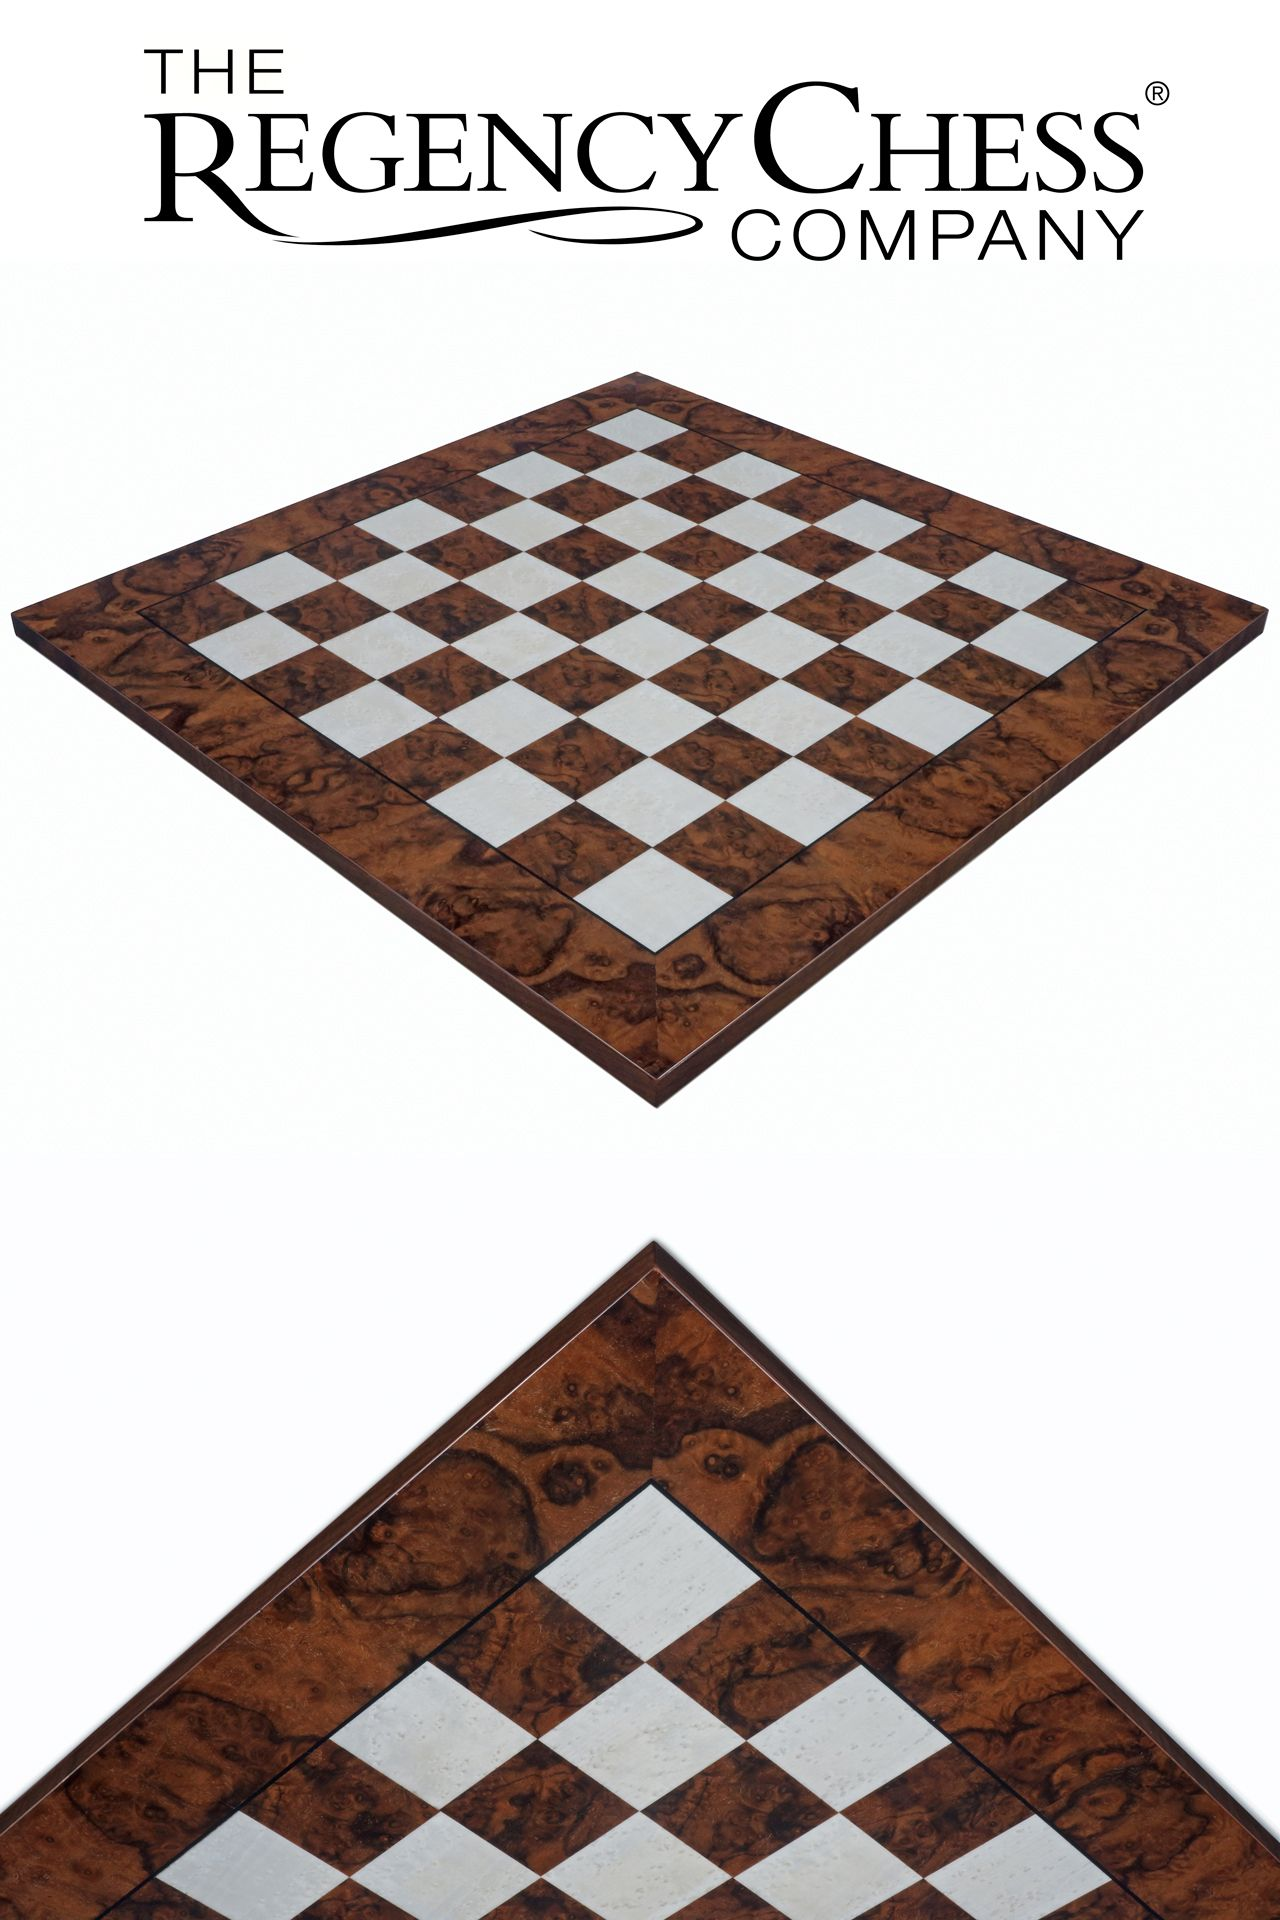 19.7 Inch Walnut and Maple Deluxe Chess Board